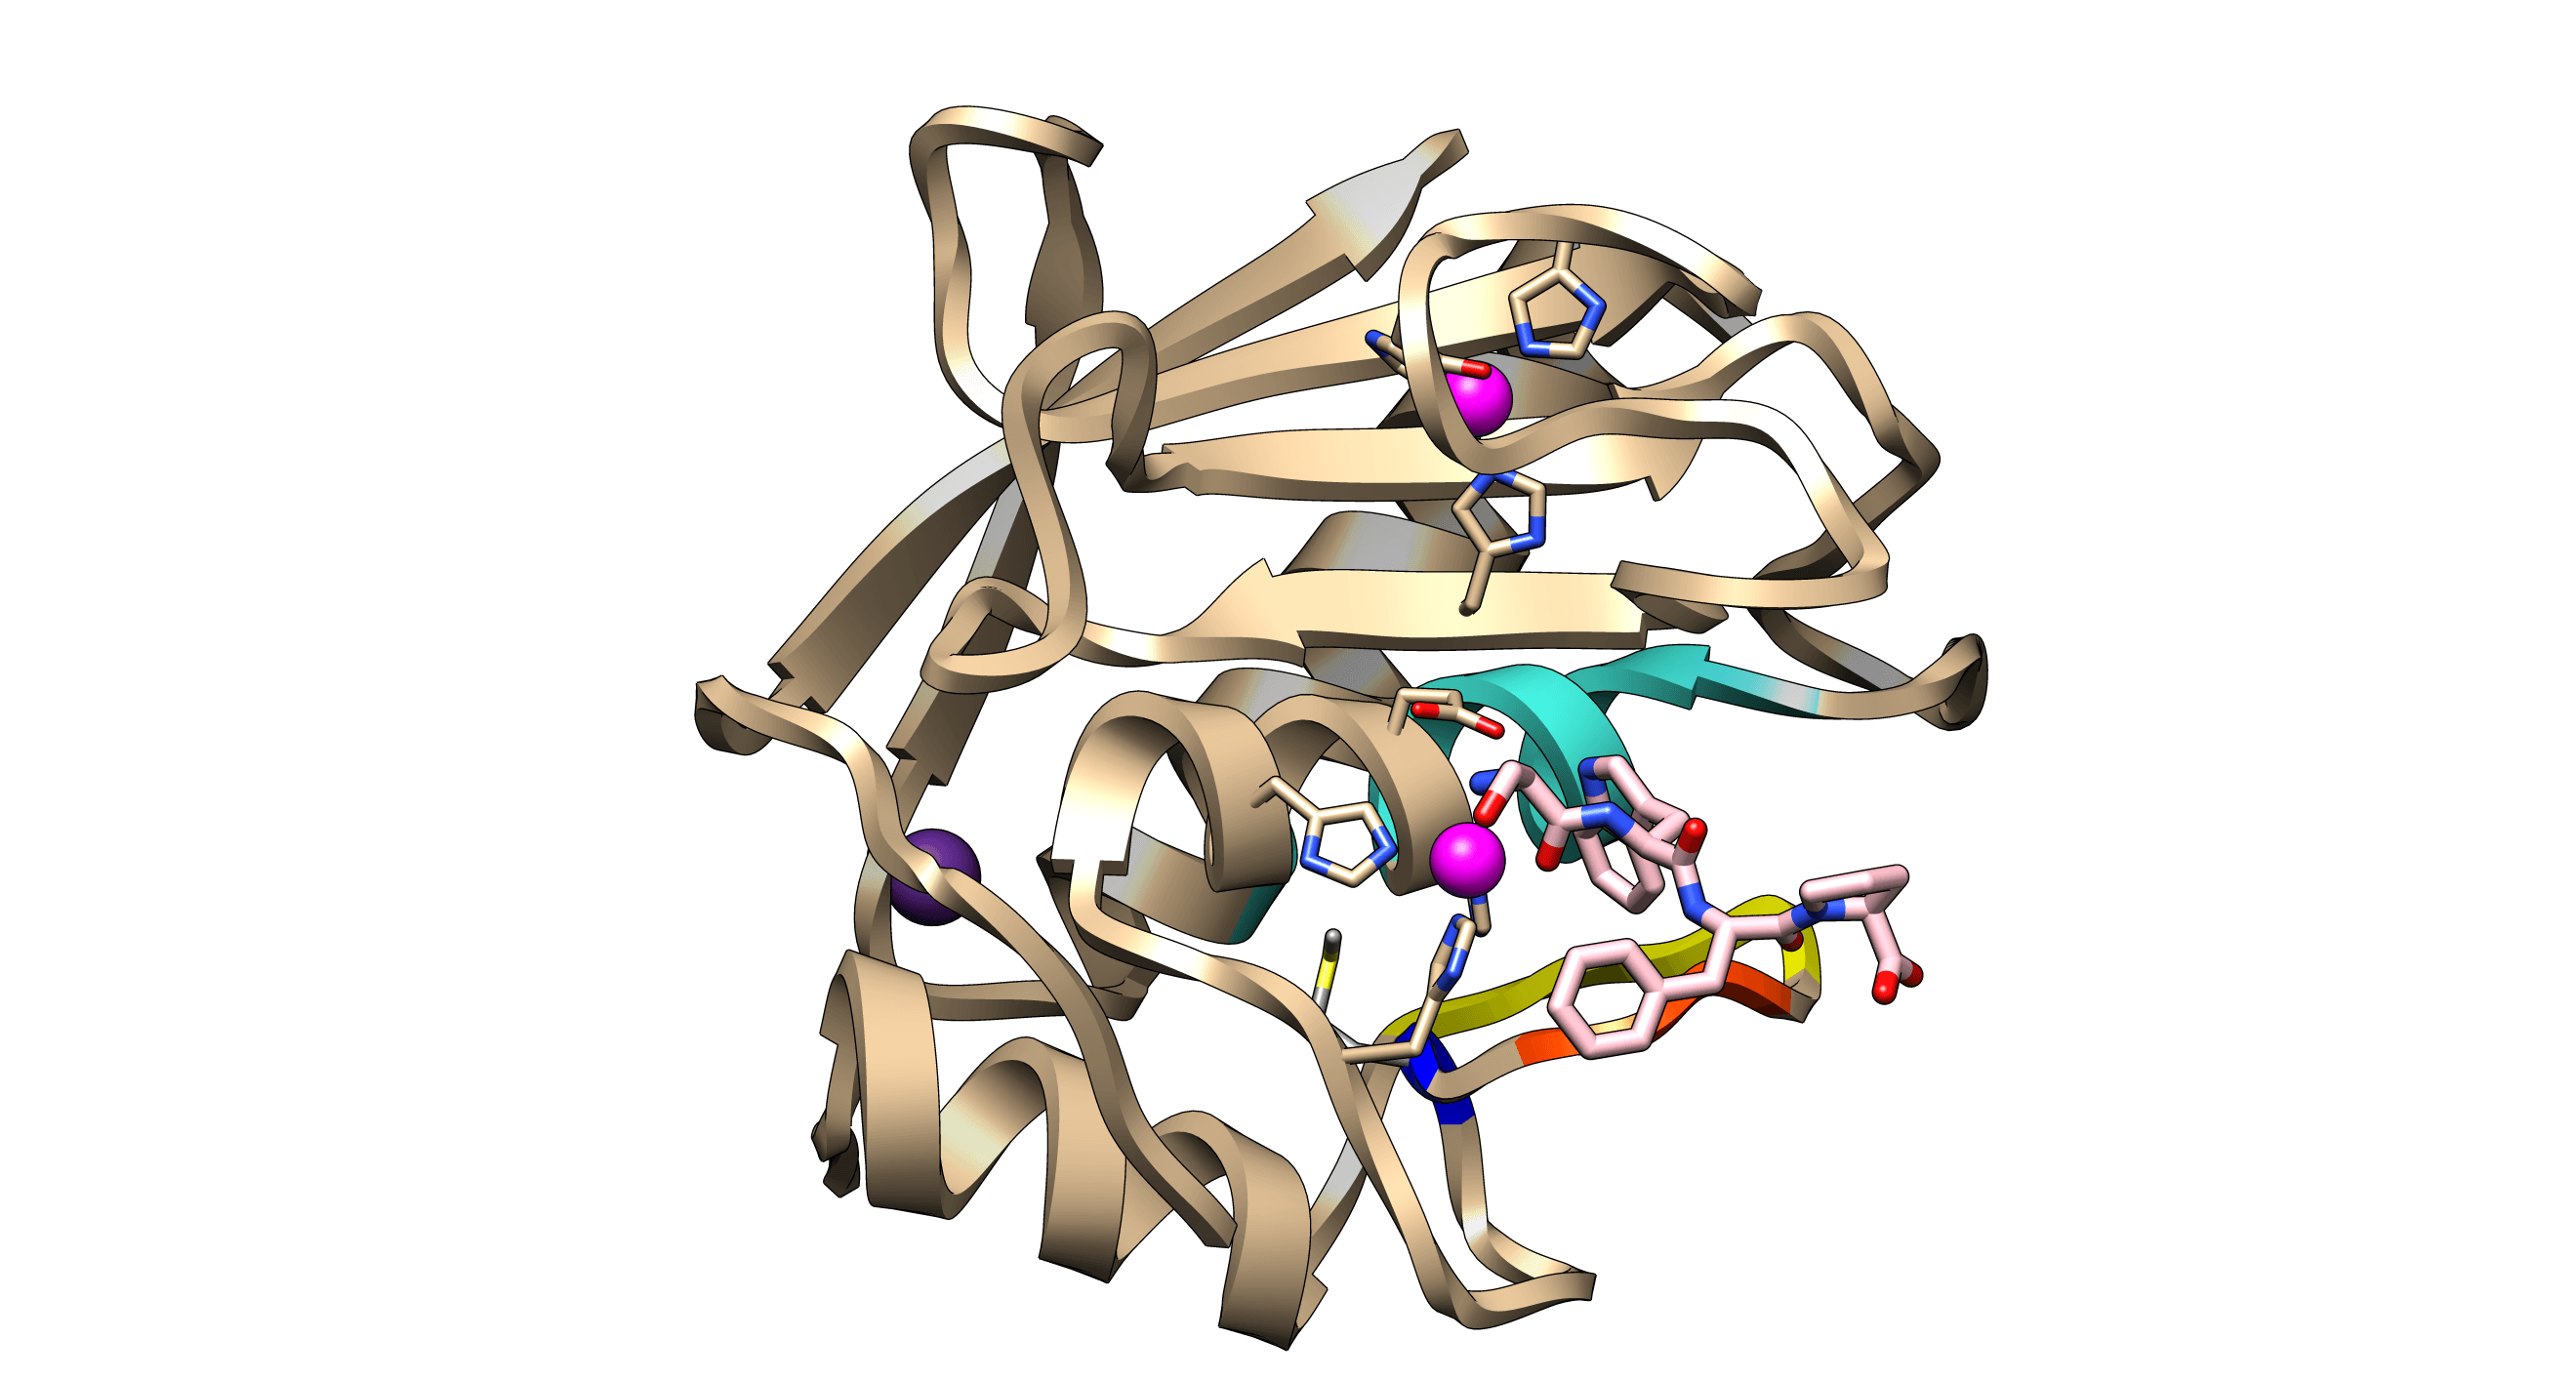 Catalytic domain Kly18